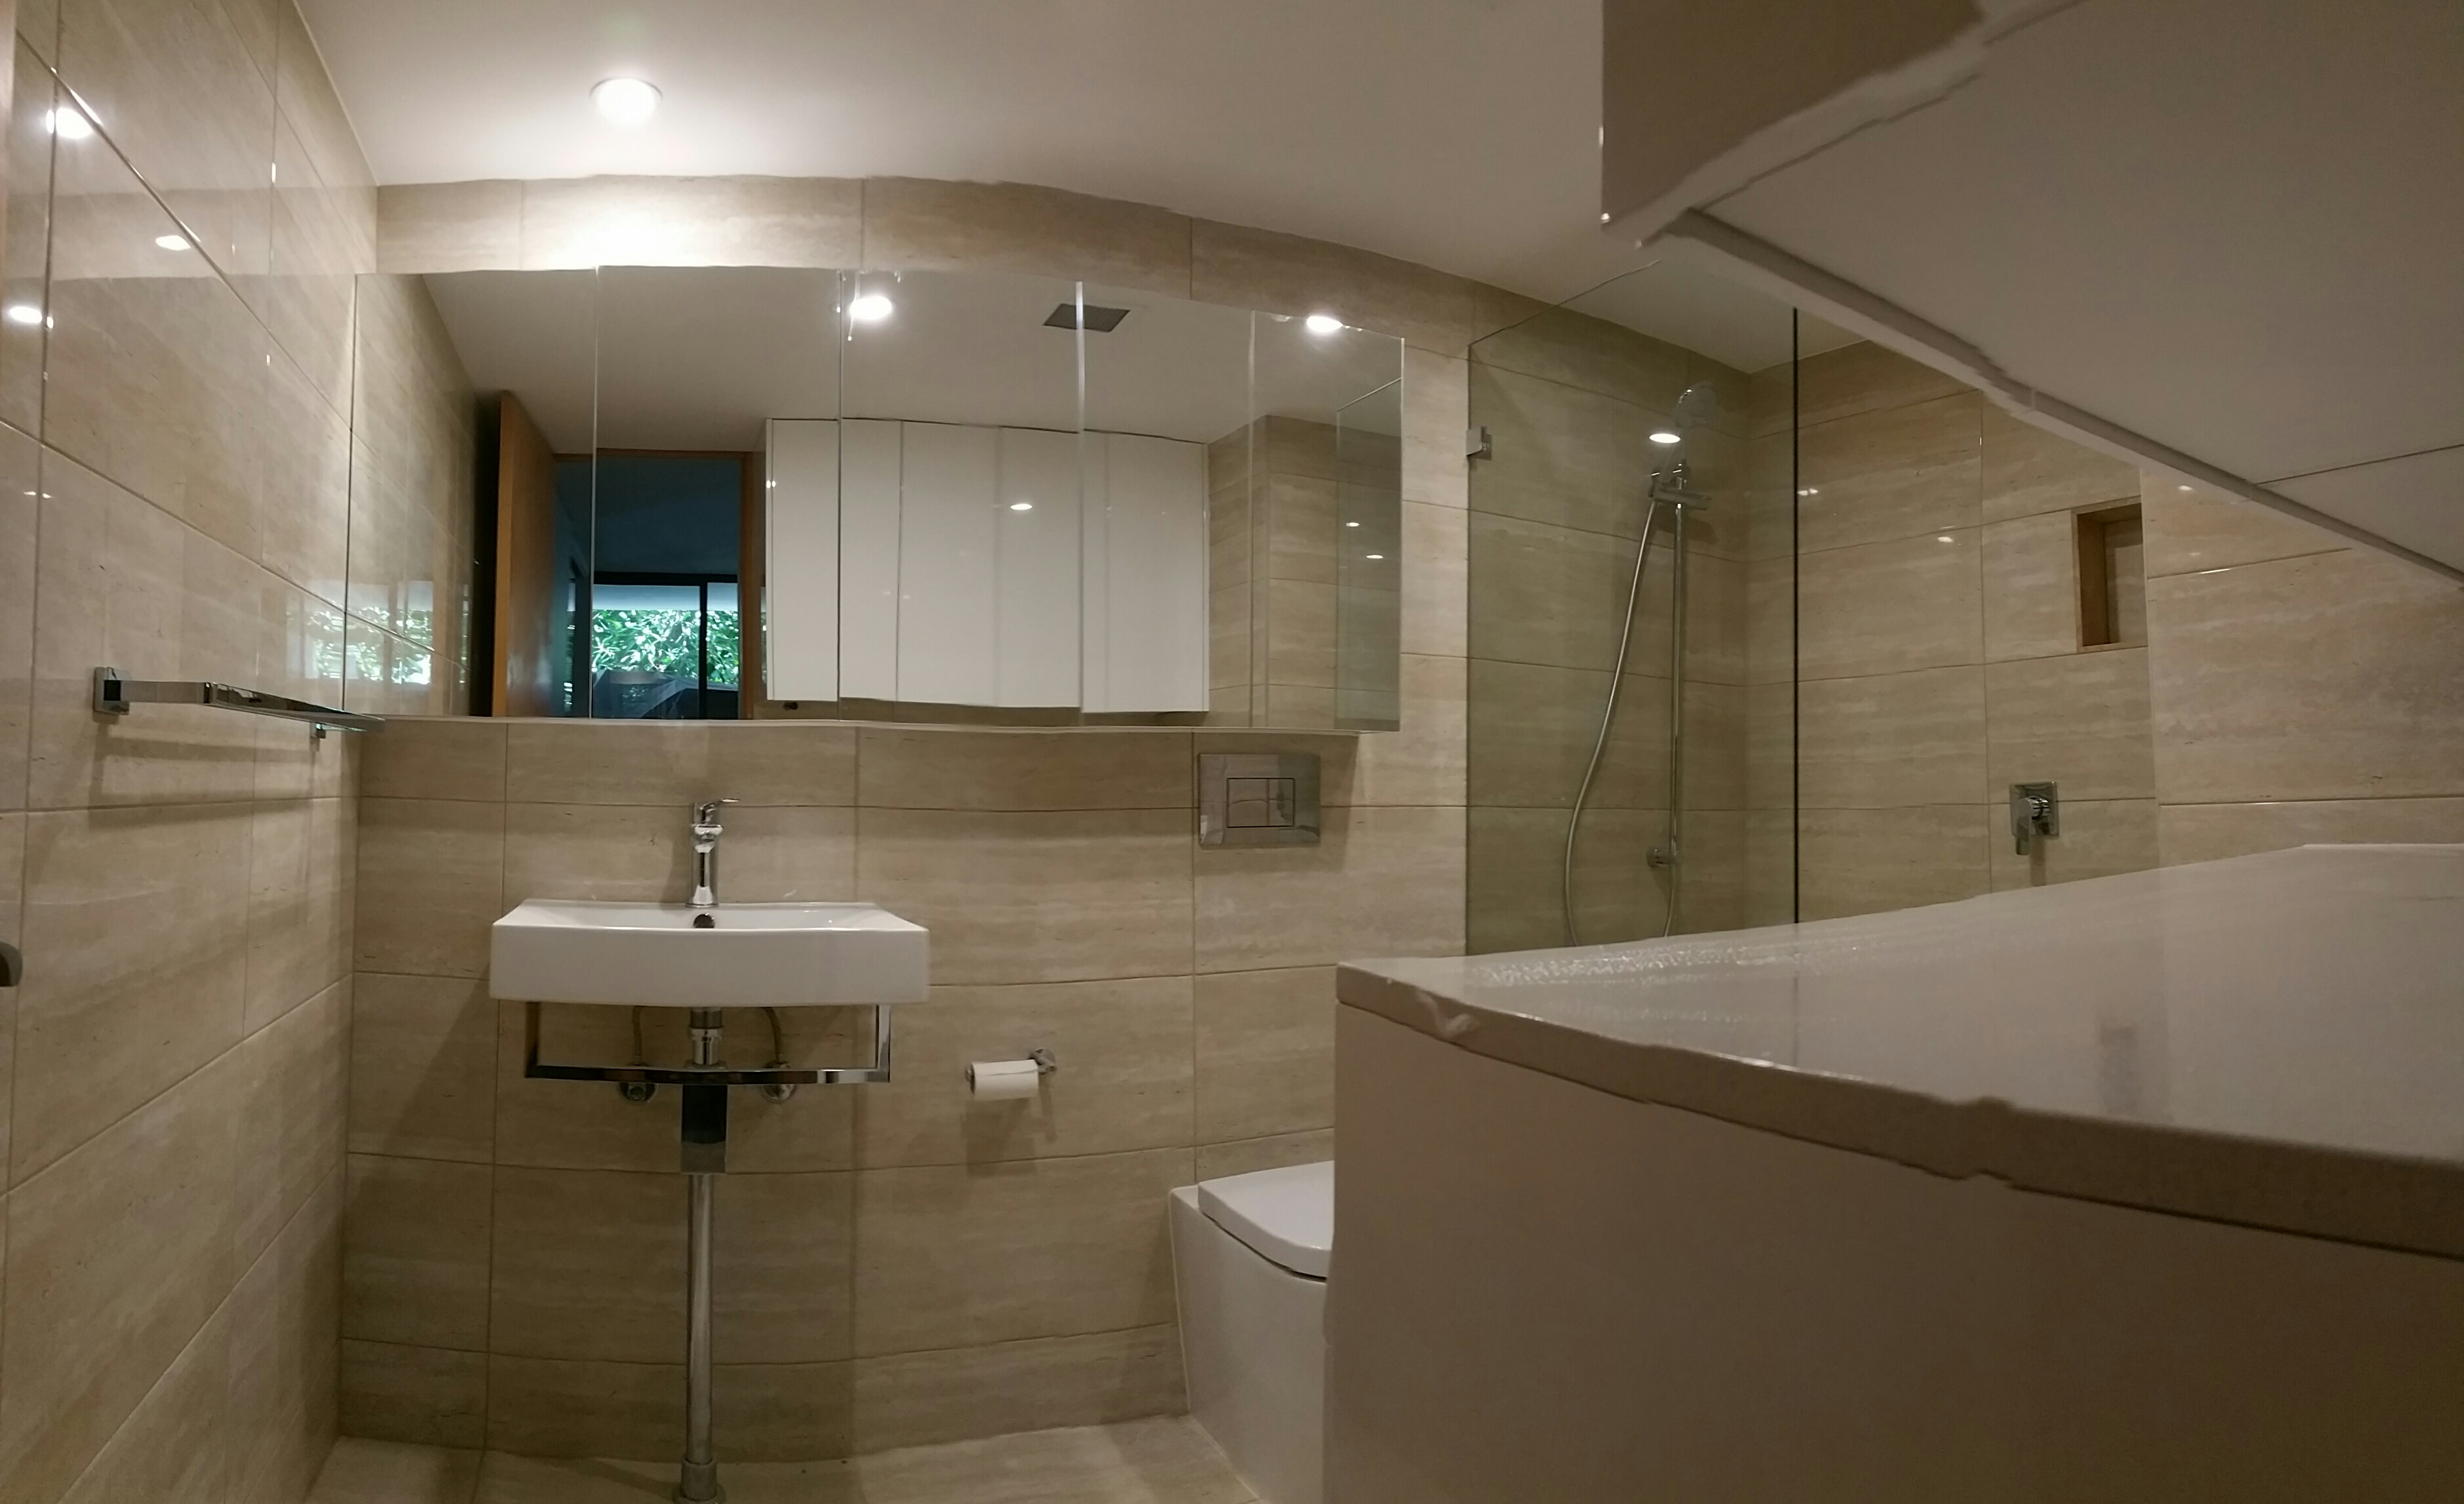 Buy a surry hills 2 online at luke 39 s renovations in sydney for Bathroom remodeling pittsburgh north hills